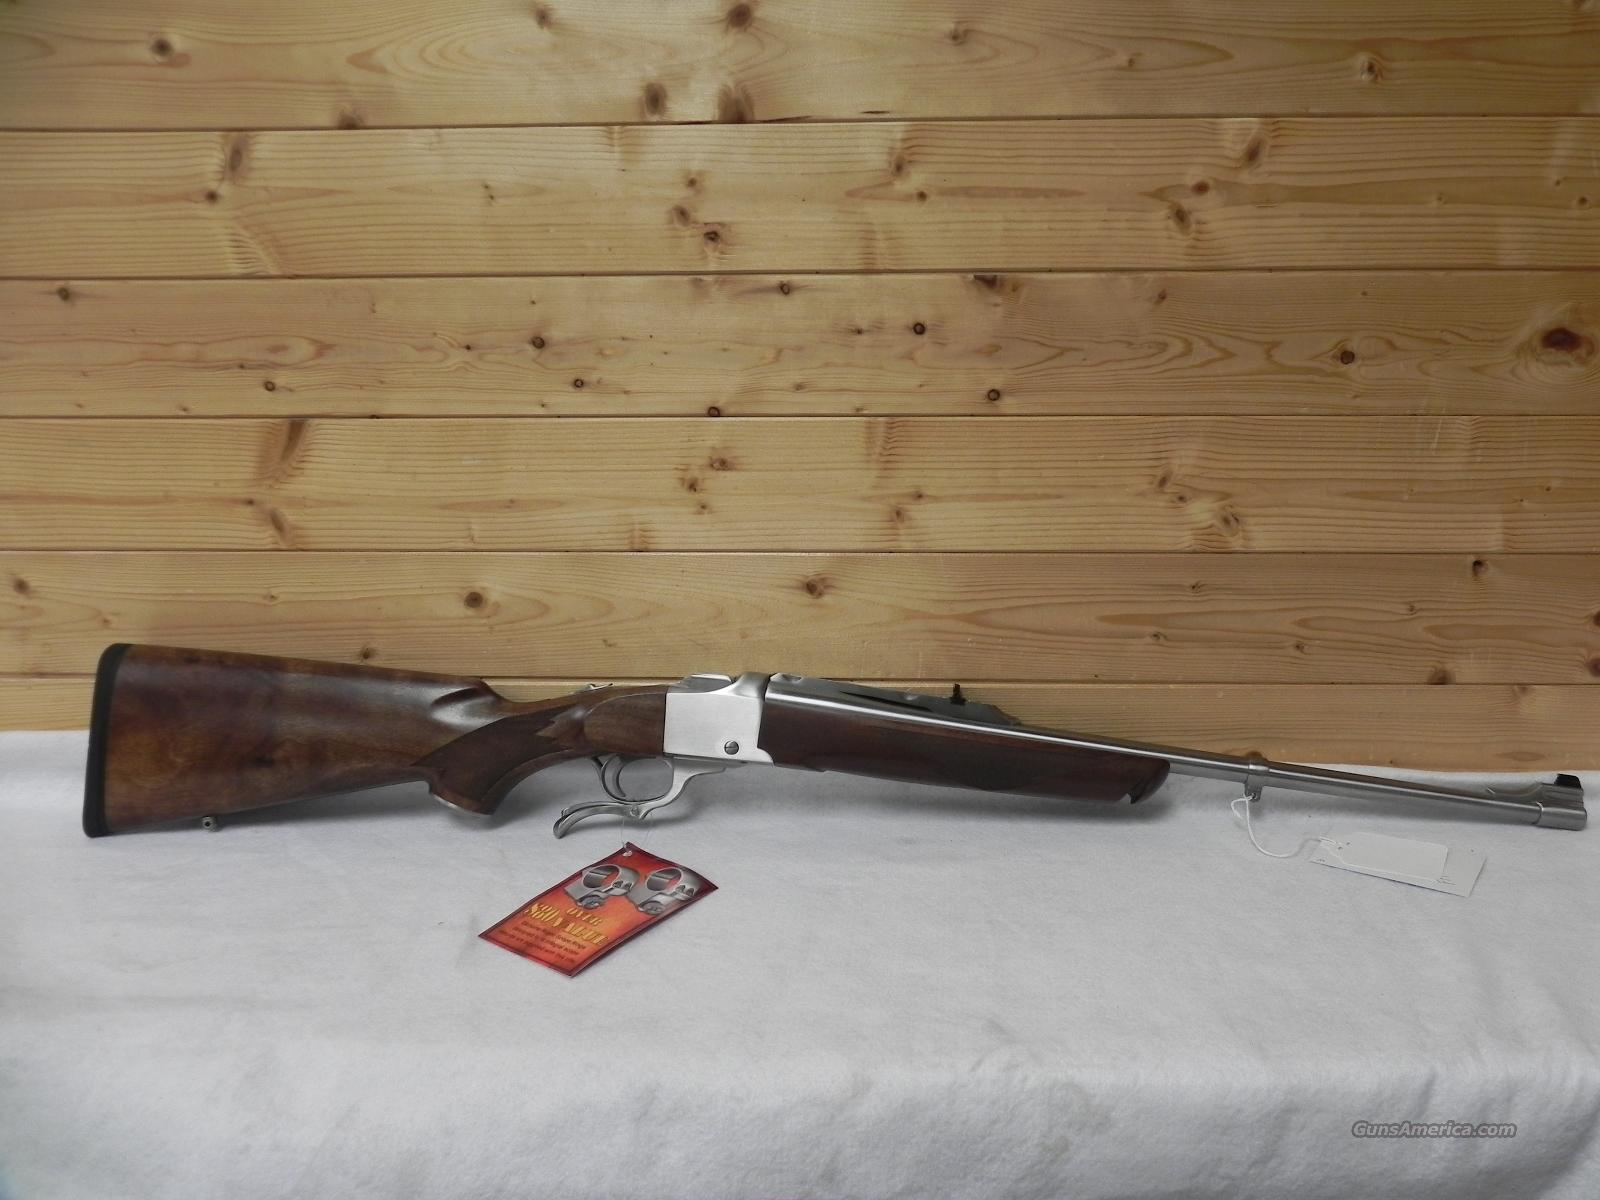 Ruger No 1  257 robert  stainless  Guns > Rifles > Ruger Rifles > #1 Type